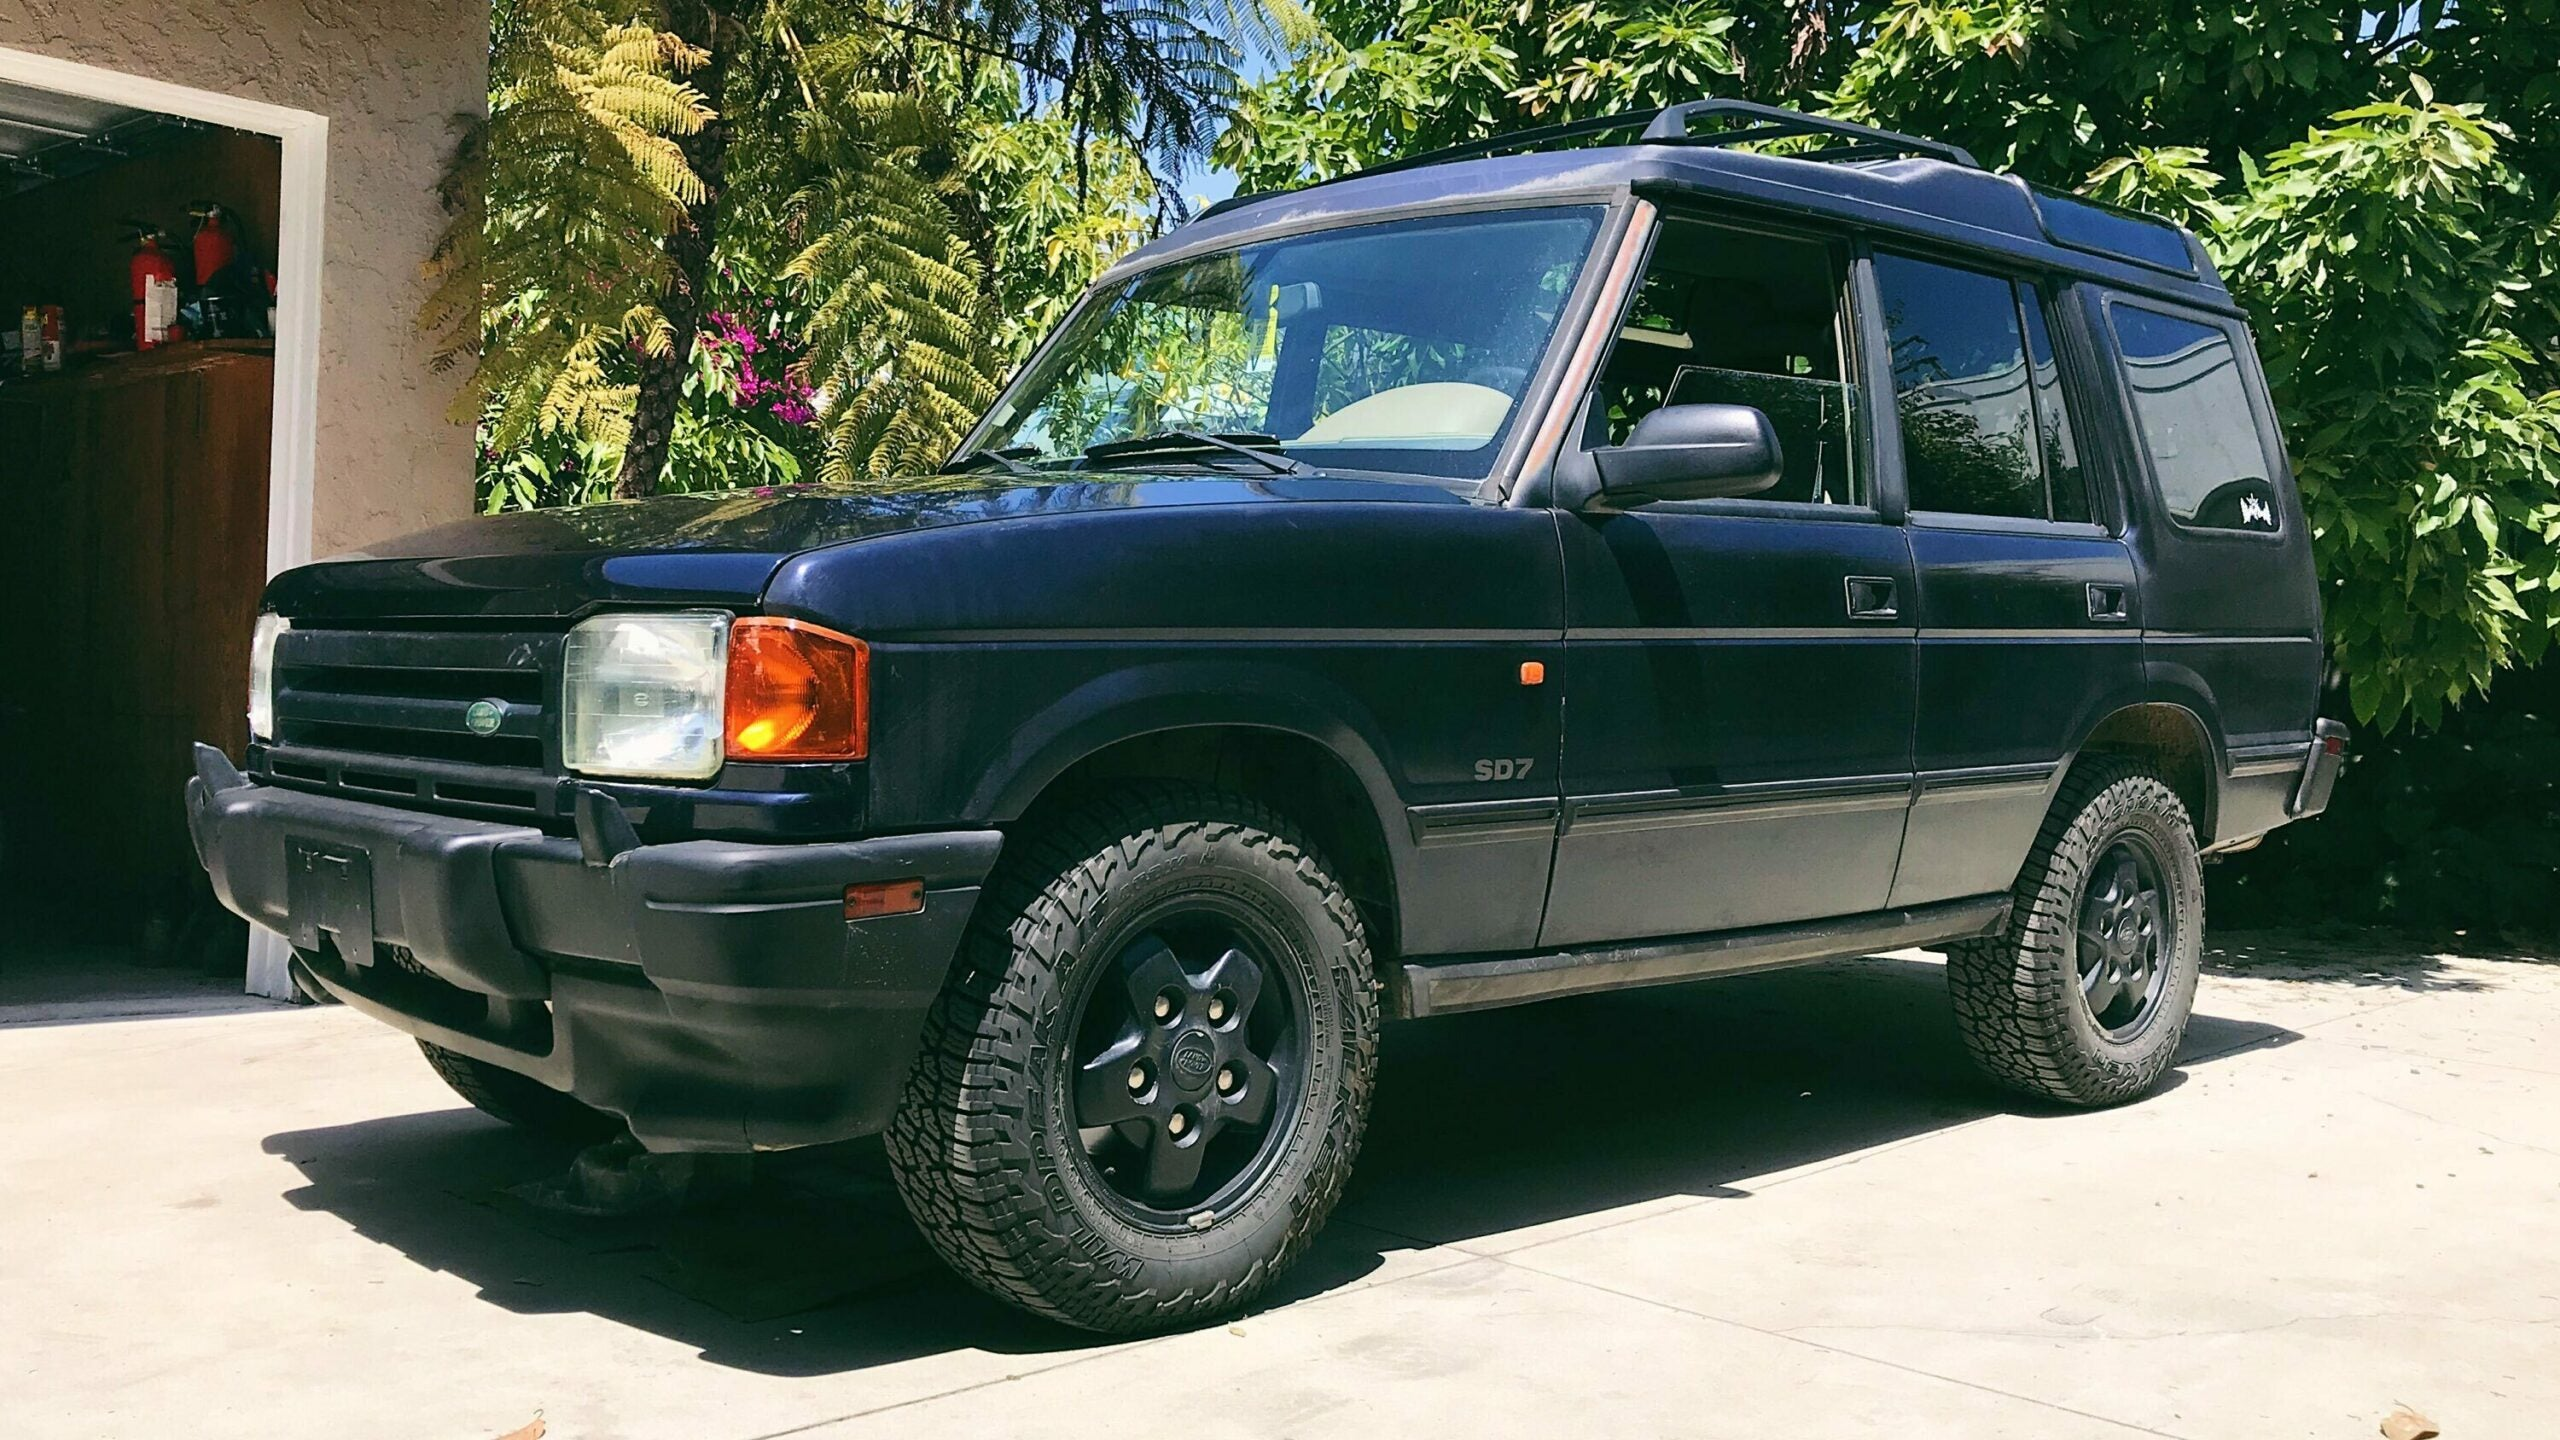 How I Made My Used Land Rover Discovery Look Presentable on a Dollar-Store Budget